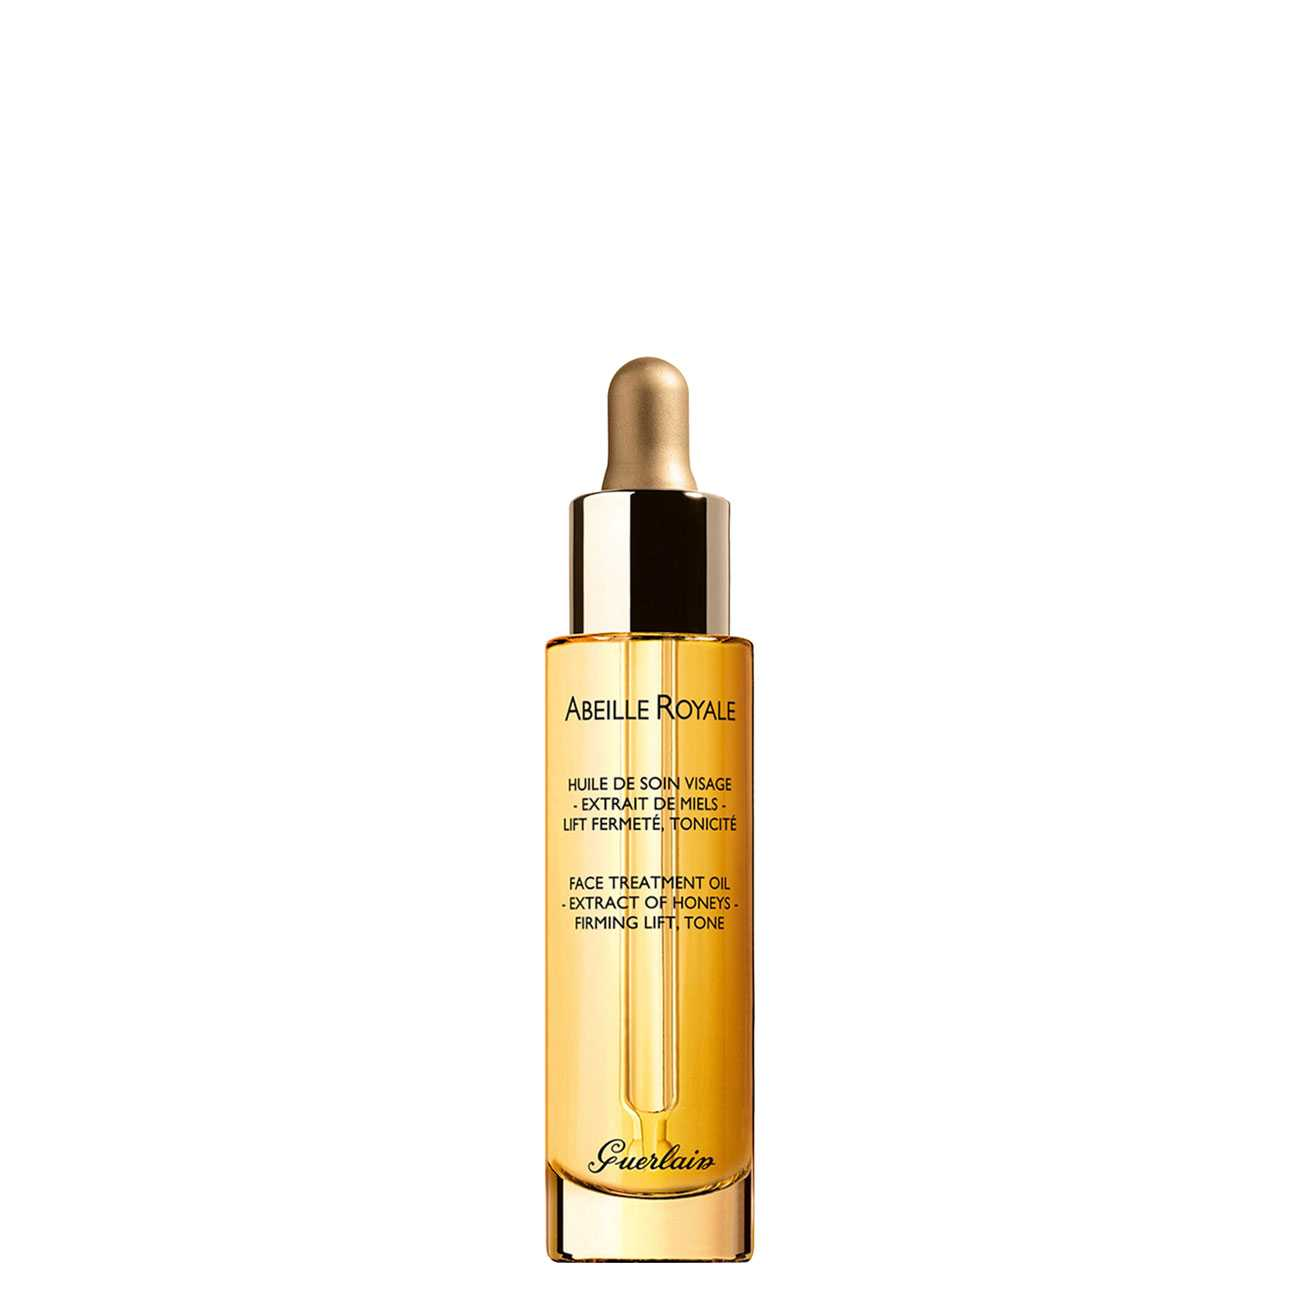 ABEILLE ROYALE LIFTING OIL 50 ML